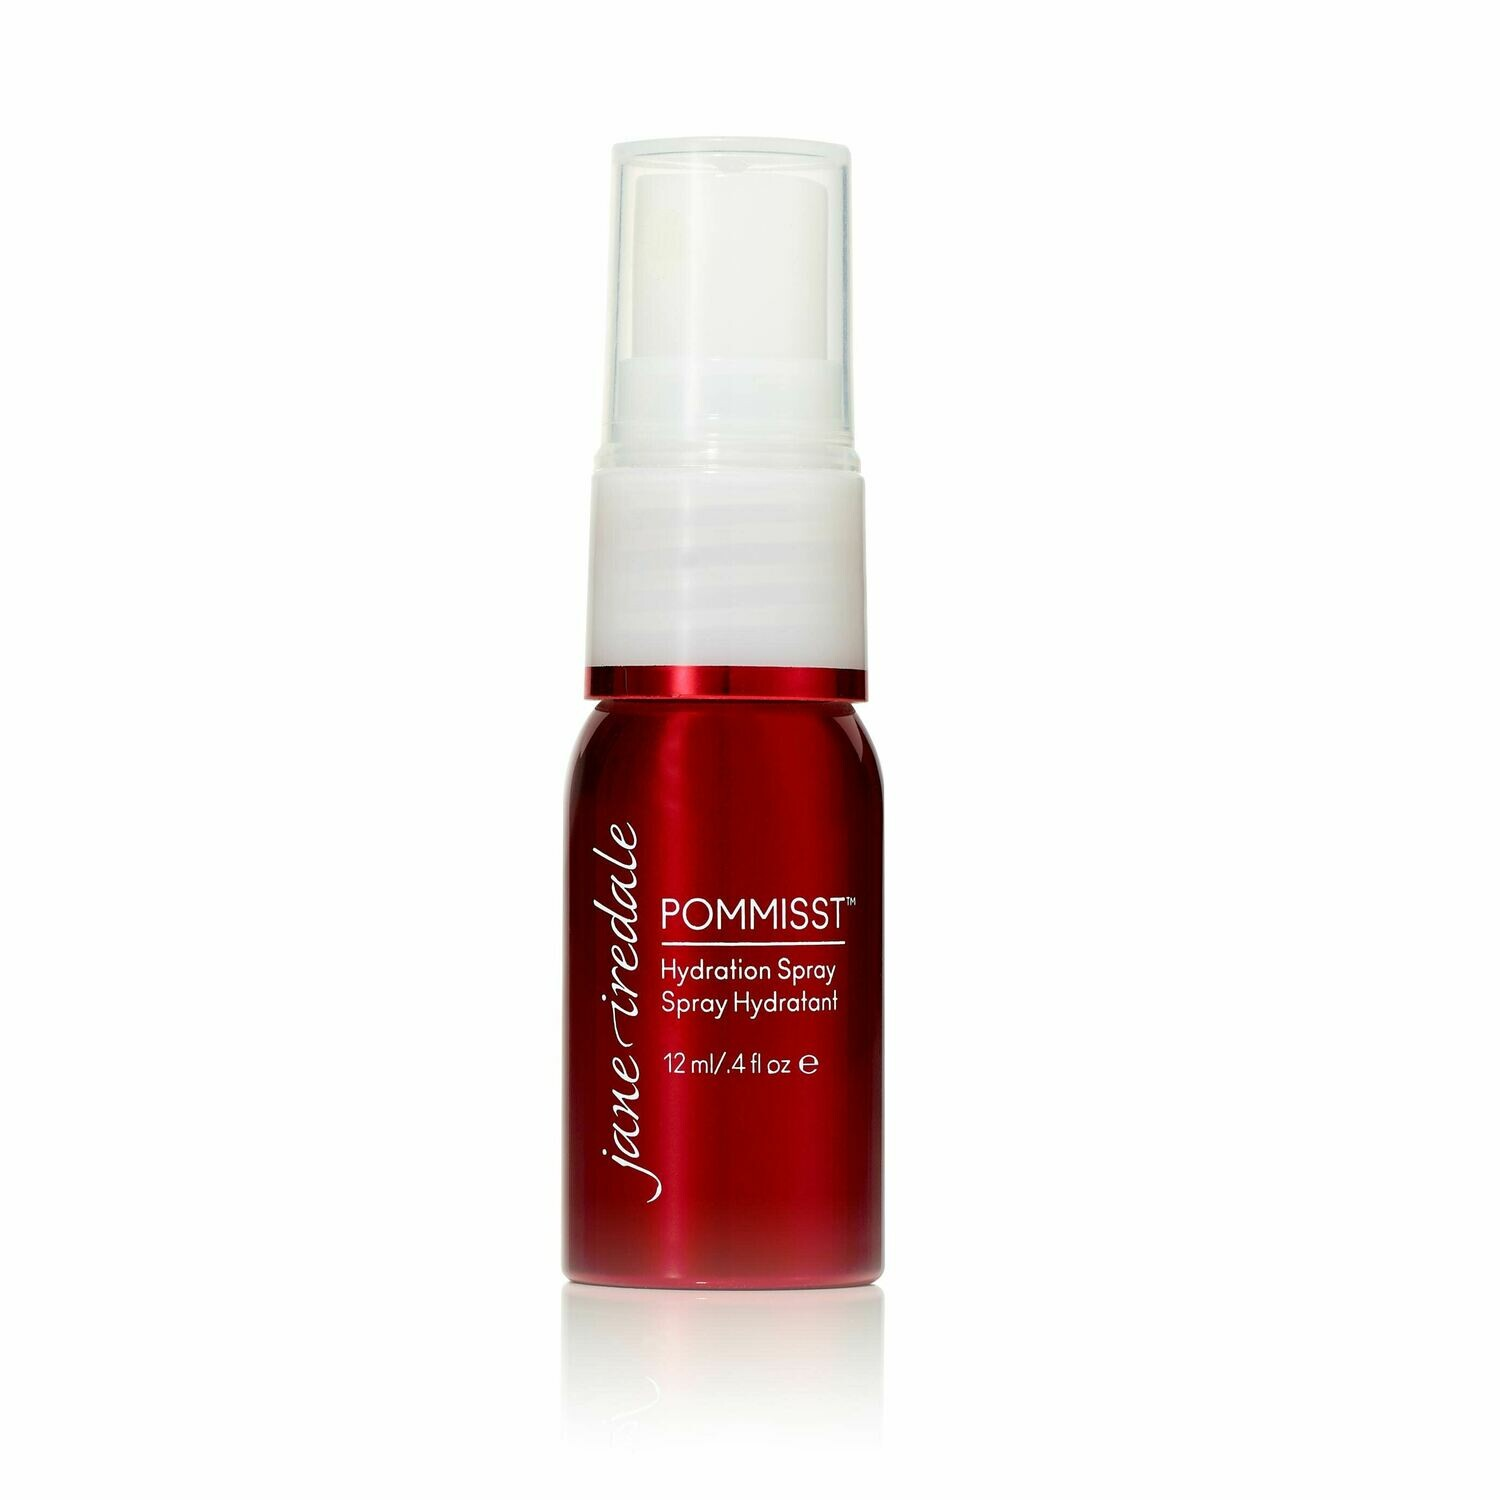 Mini POMMISST Hydration Spray